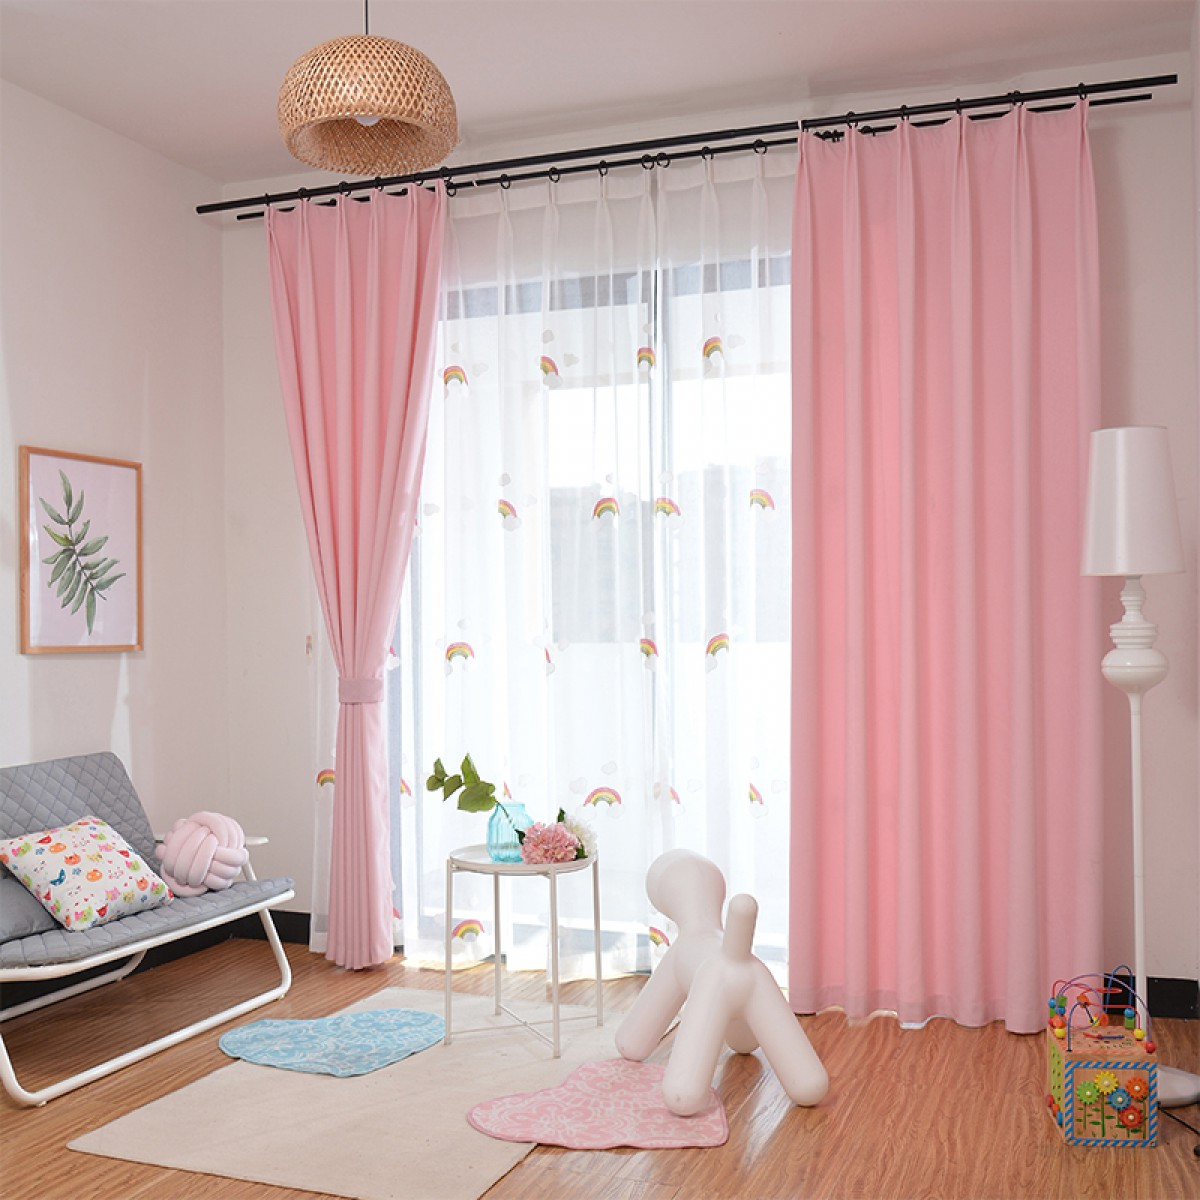 Pink Curtains white Rainbow Sheers Curtain and Drapes Set